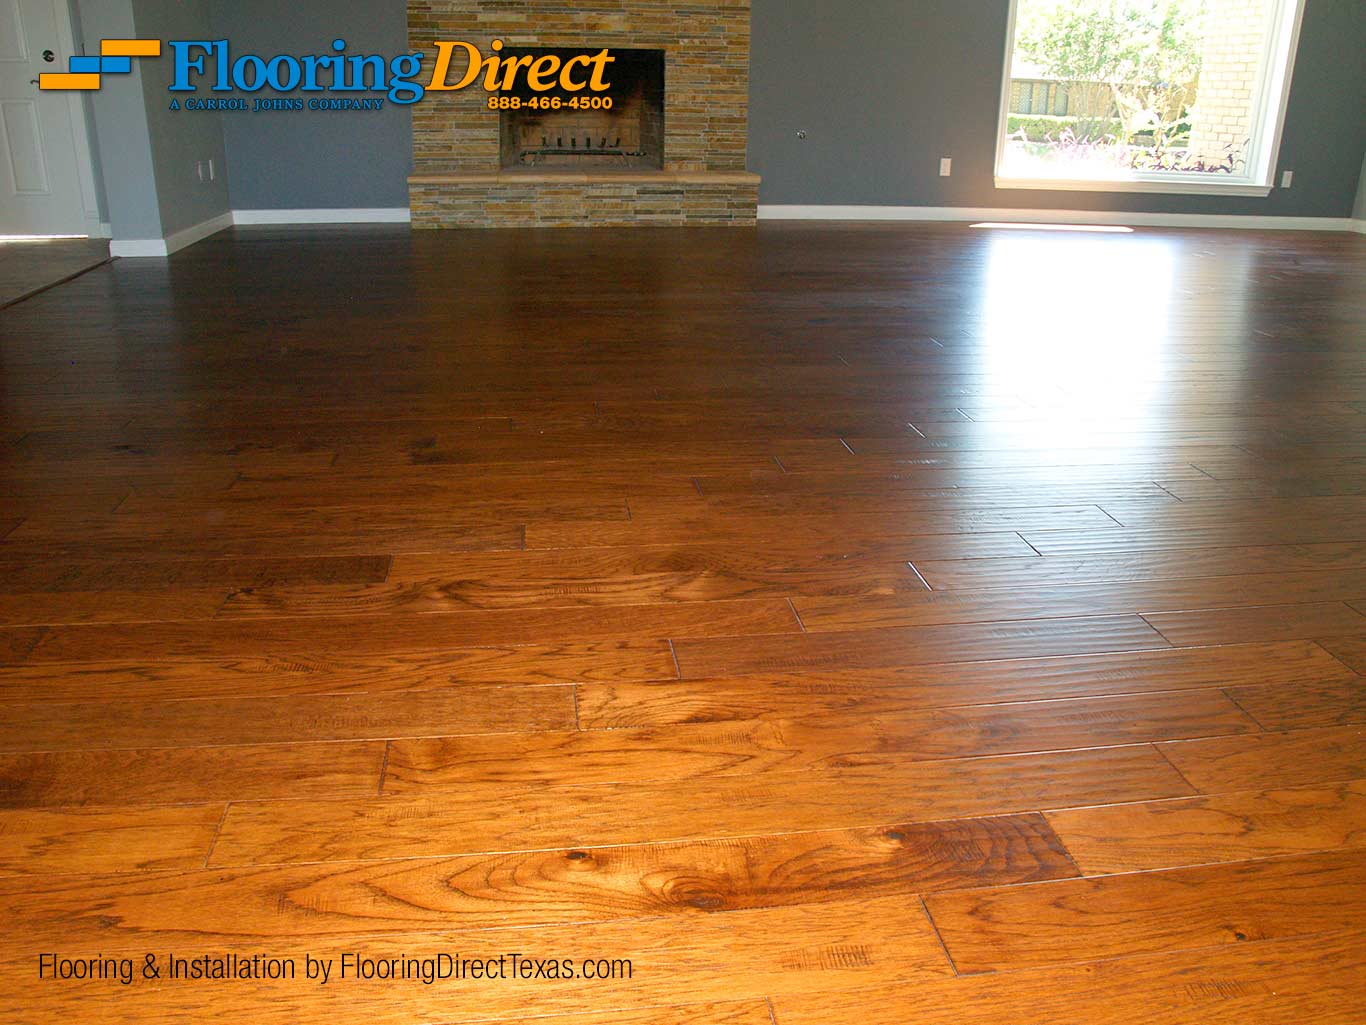 Plano Texas Hardwood Flooring By Flooring Direct